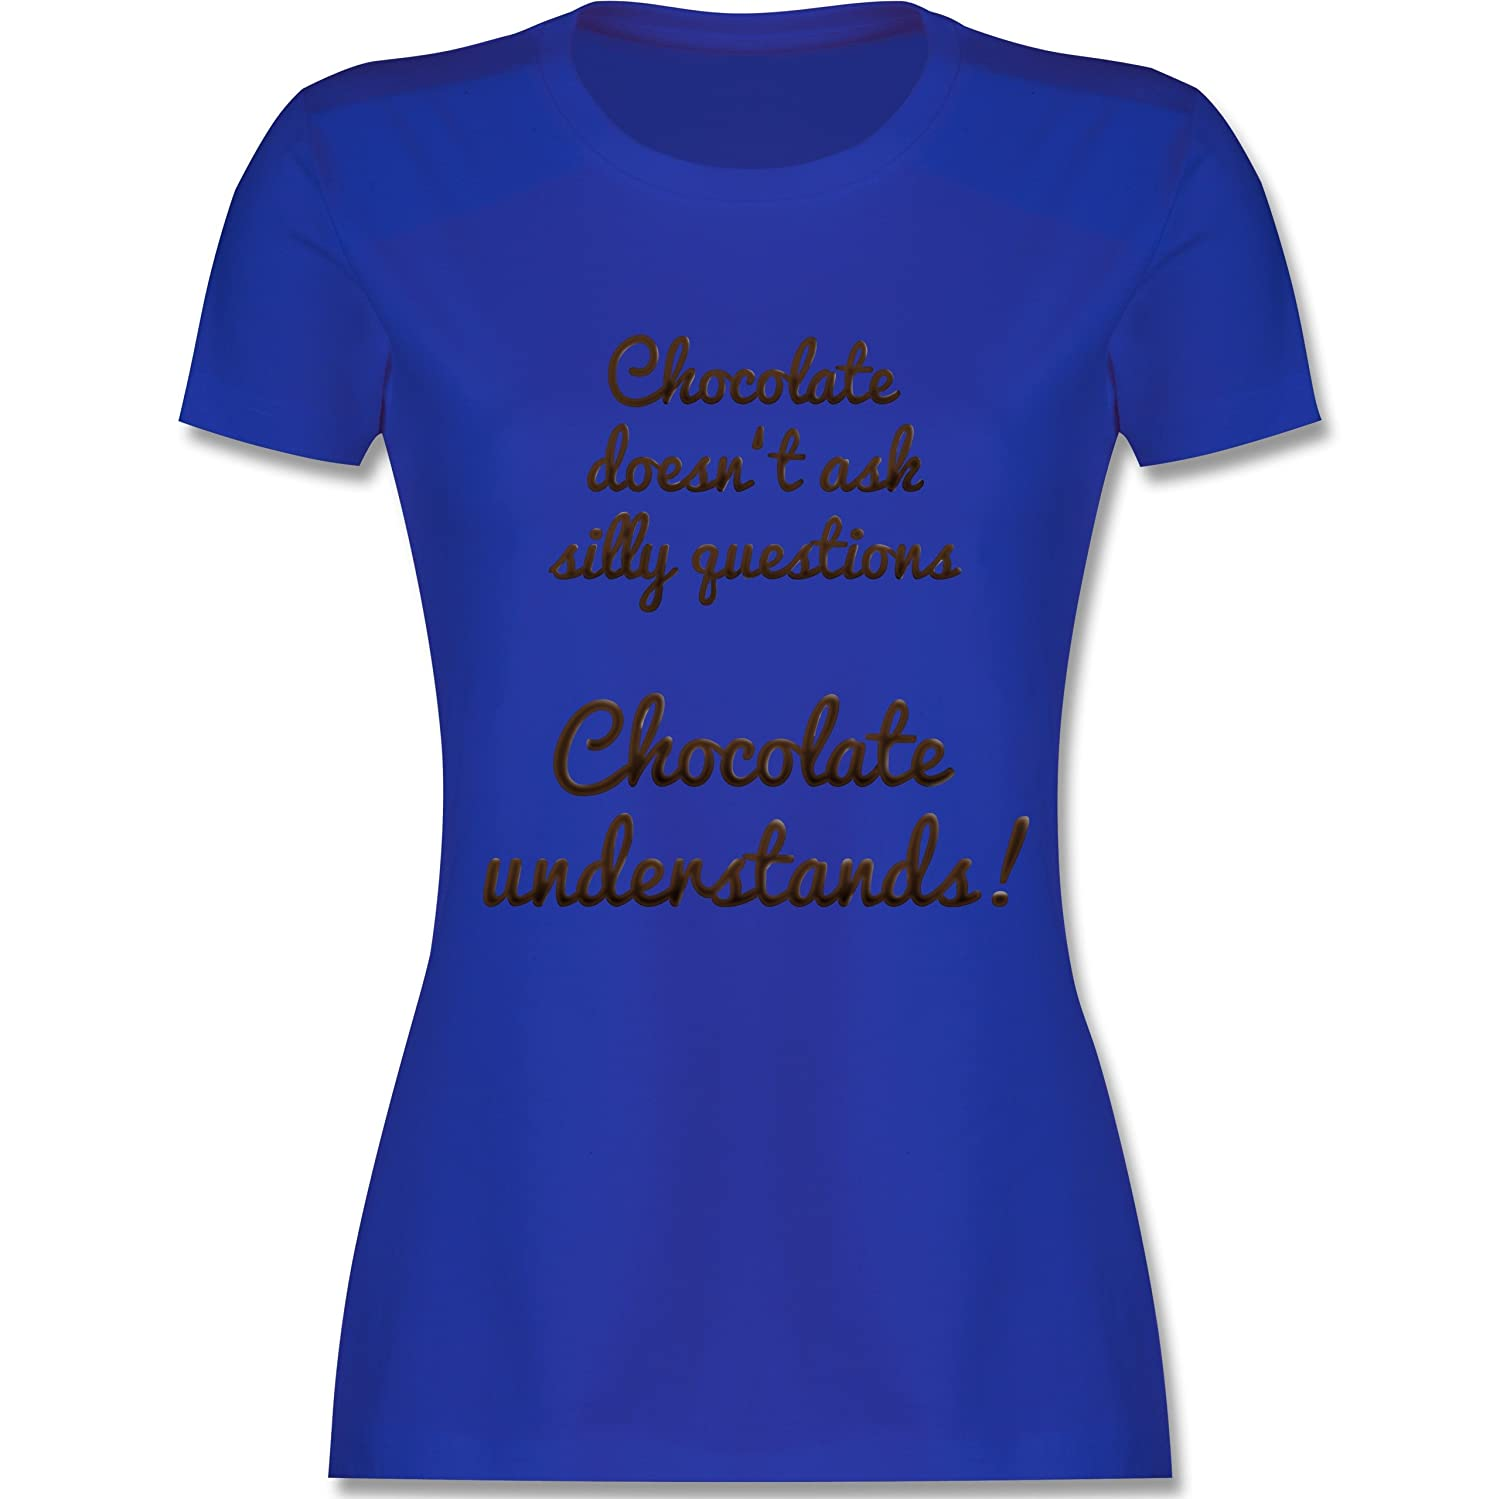 Shirtracer Küche - Chocolate Understands! - Damen T-Shirt Rundhals:  Shirtracer: Amazon.de: Bekleidung